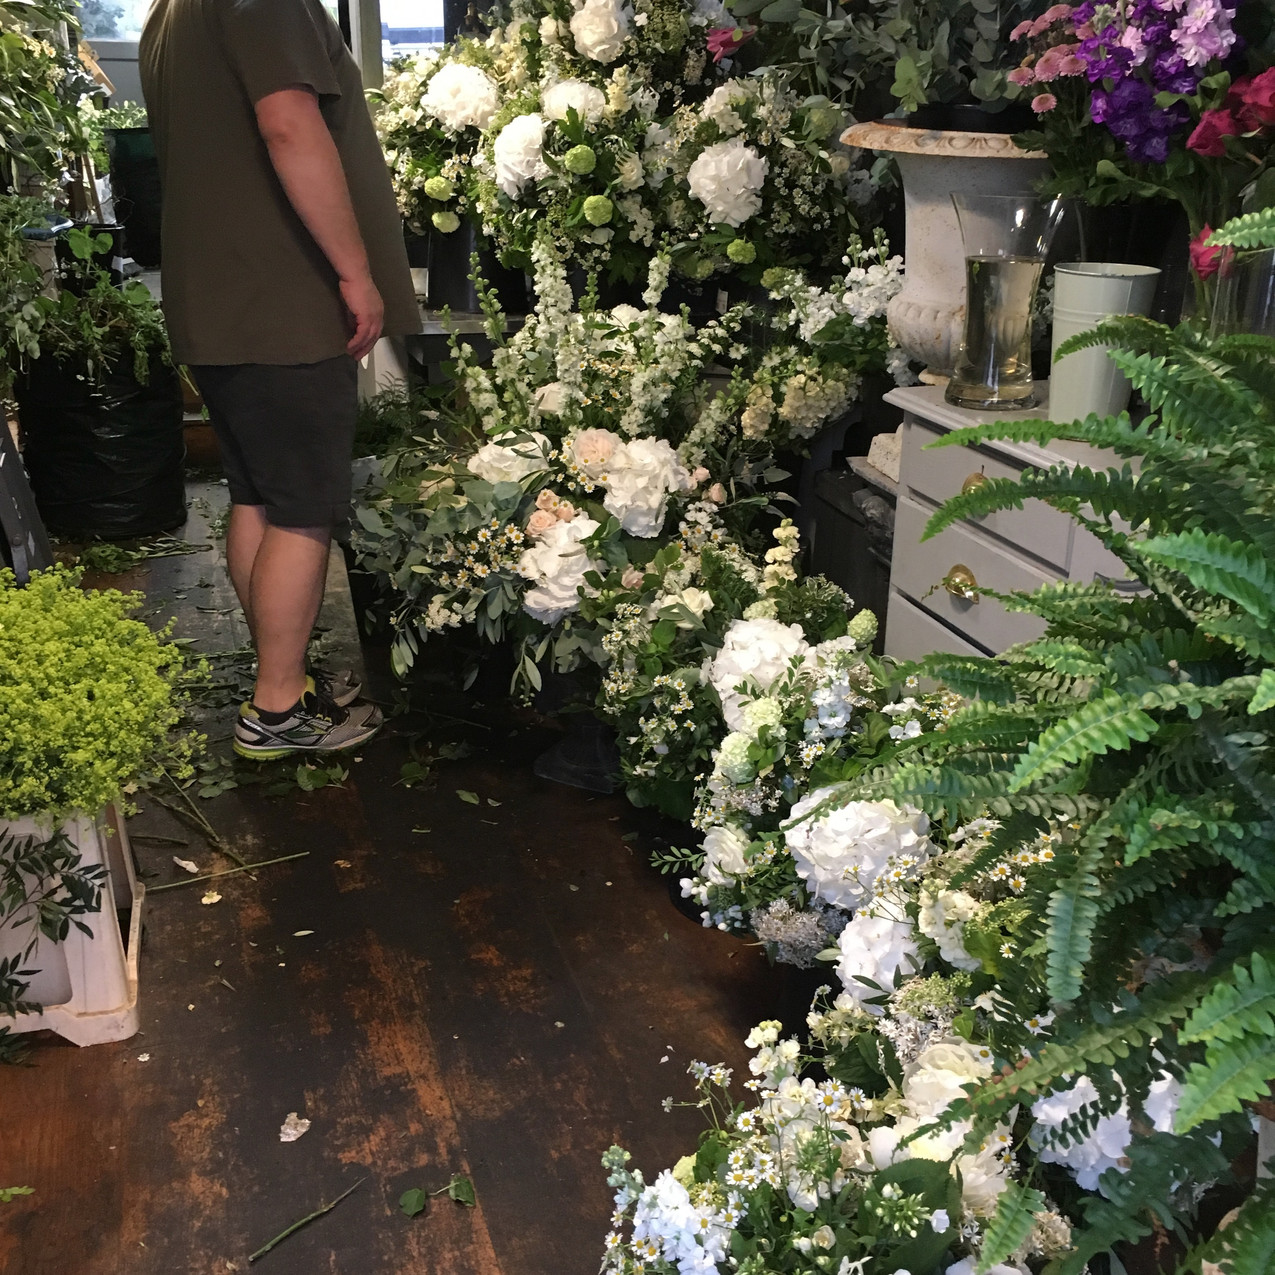 Wedding flowers prior to departure from the shop